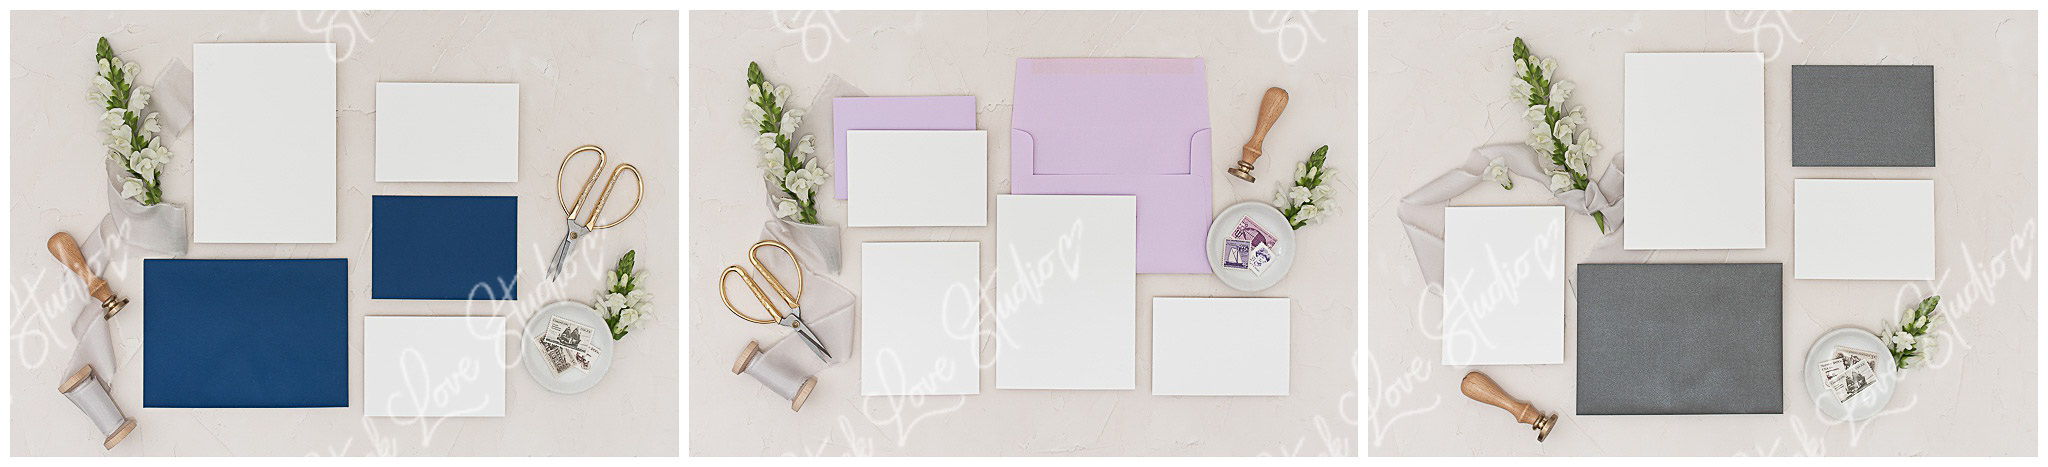 custom_stationery_mockup_0009.jpg